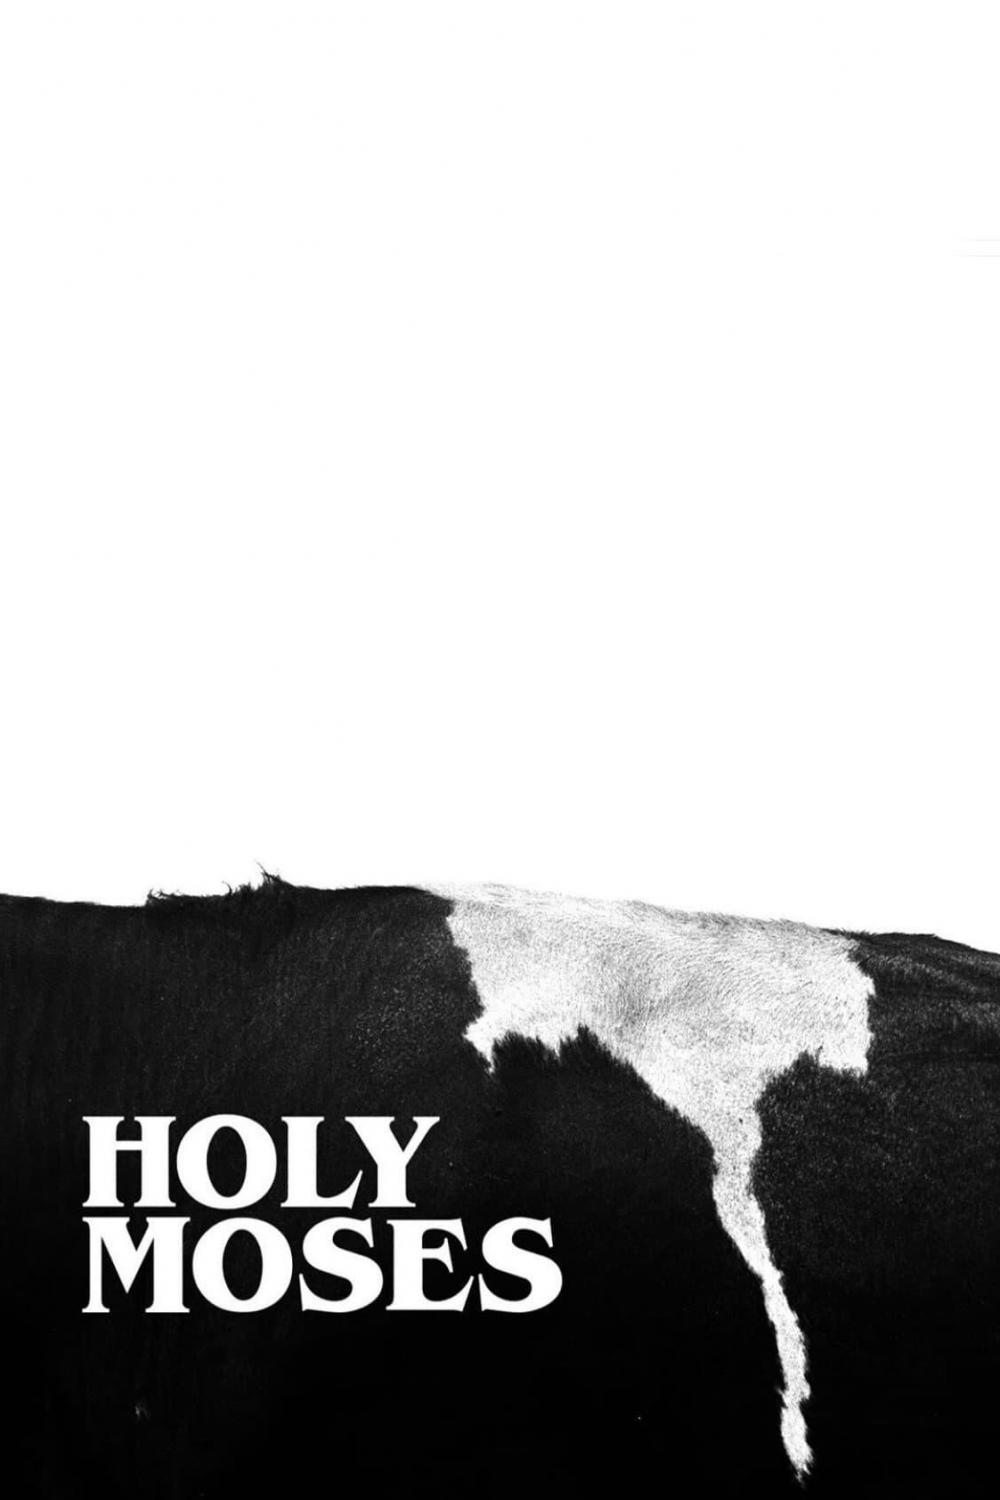 Holy Moses (2018)